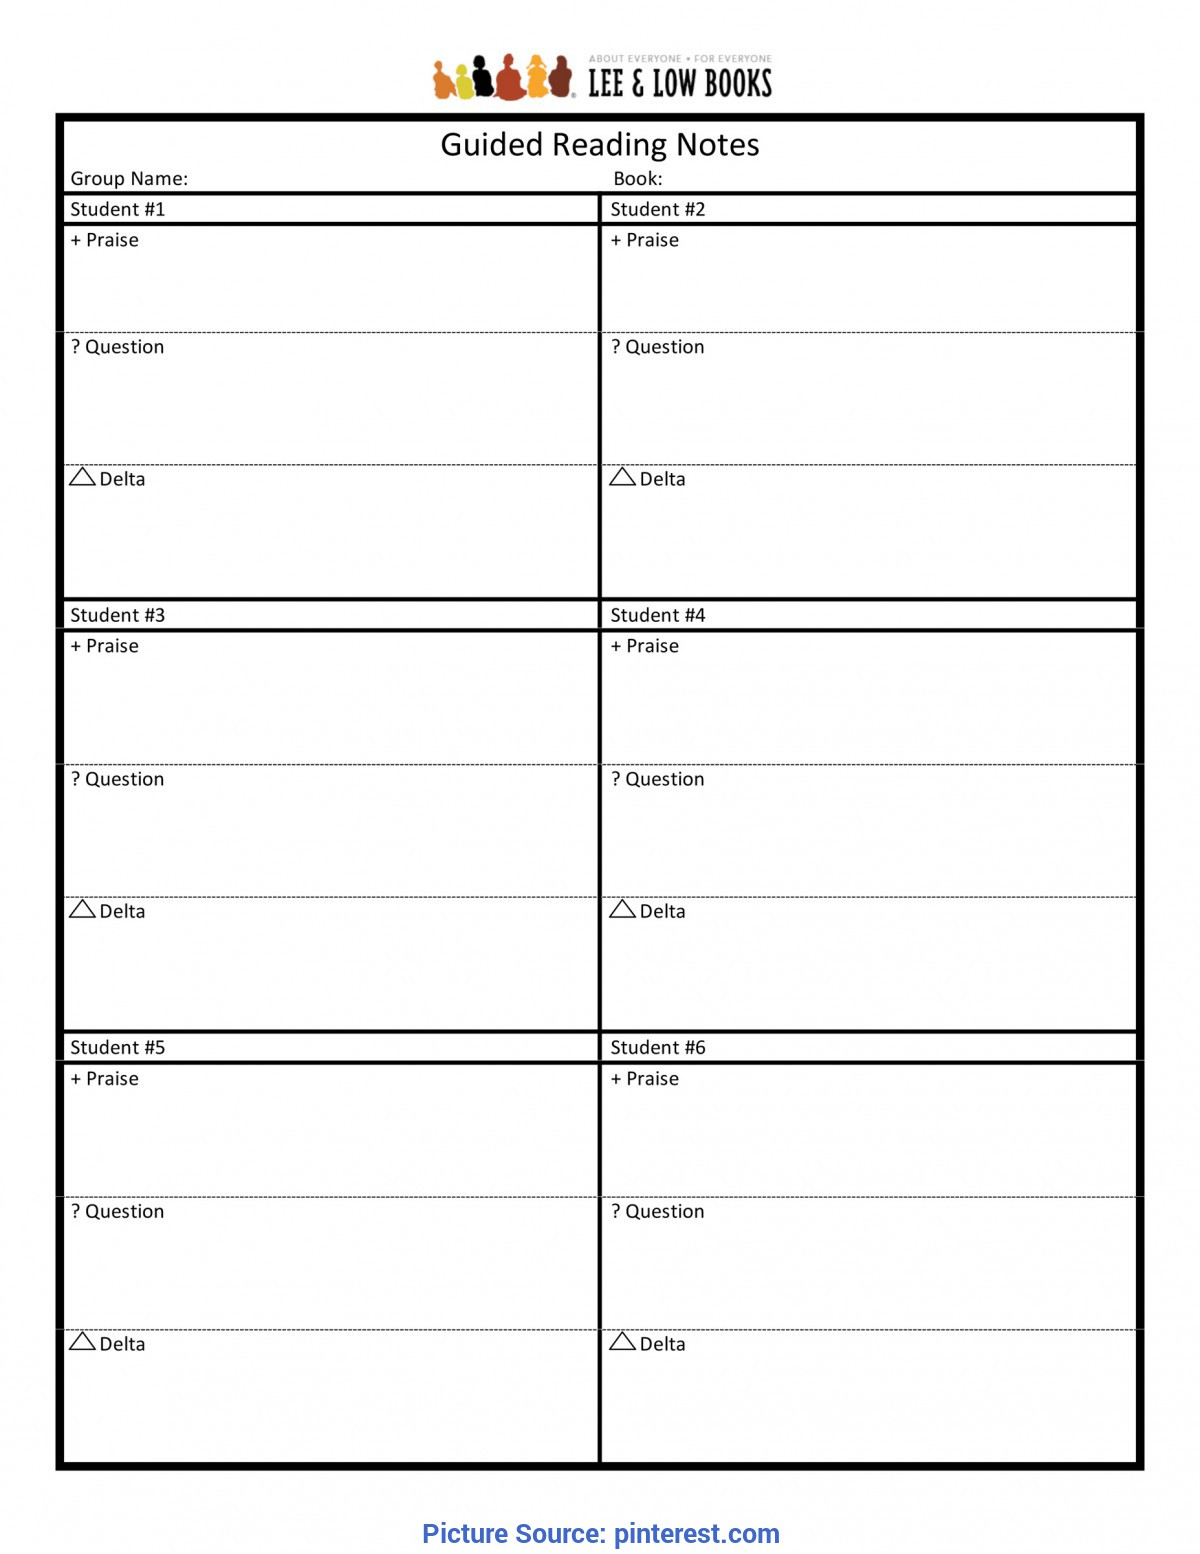 Good Guided Reading Format Guided Reading Notes Template | Common Core & Curriculu